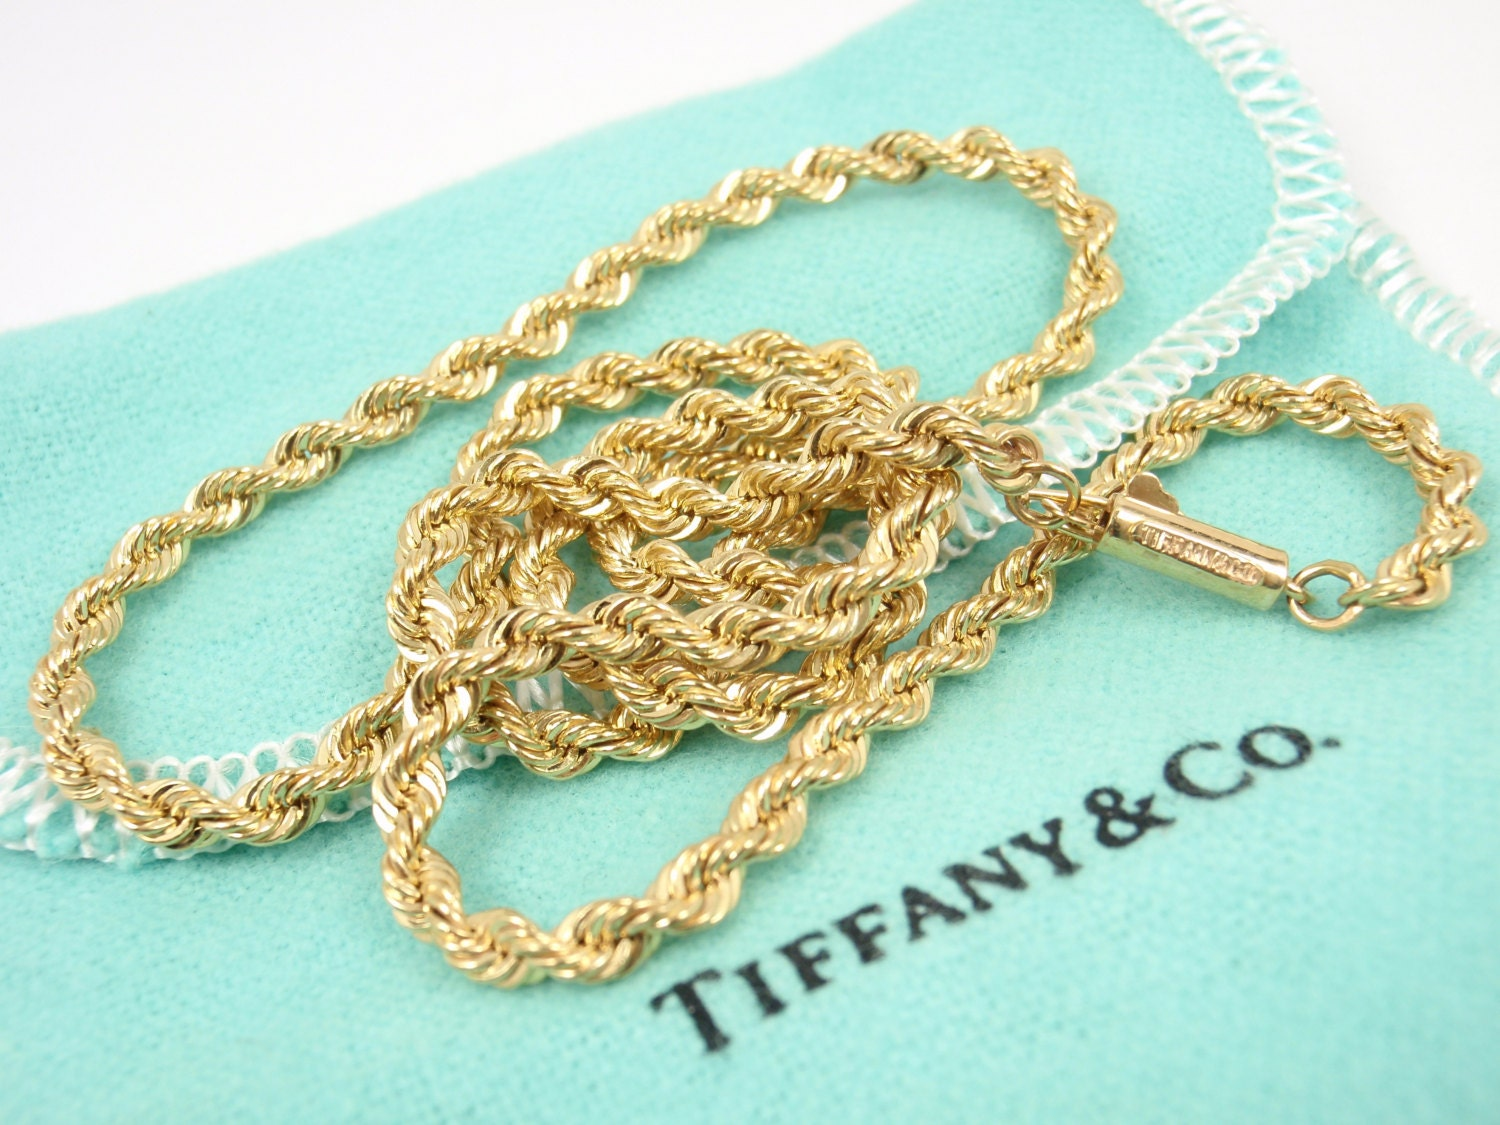 989ef0eef6177 Rare Vintage Tiffany & Co 14K Yellow Gold Rope Chain Necklace 18